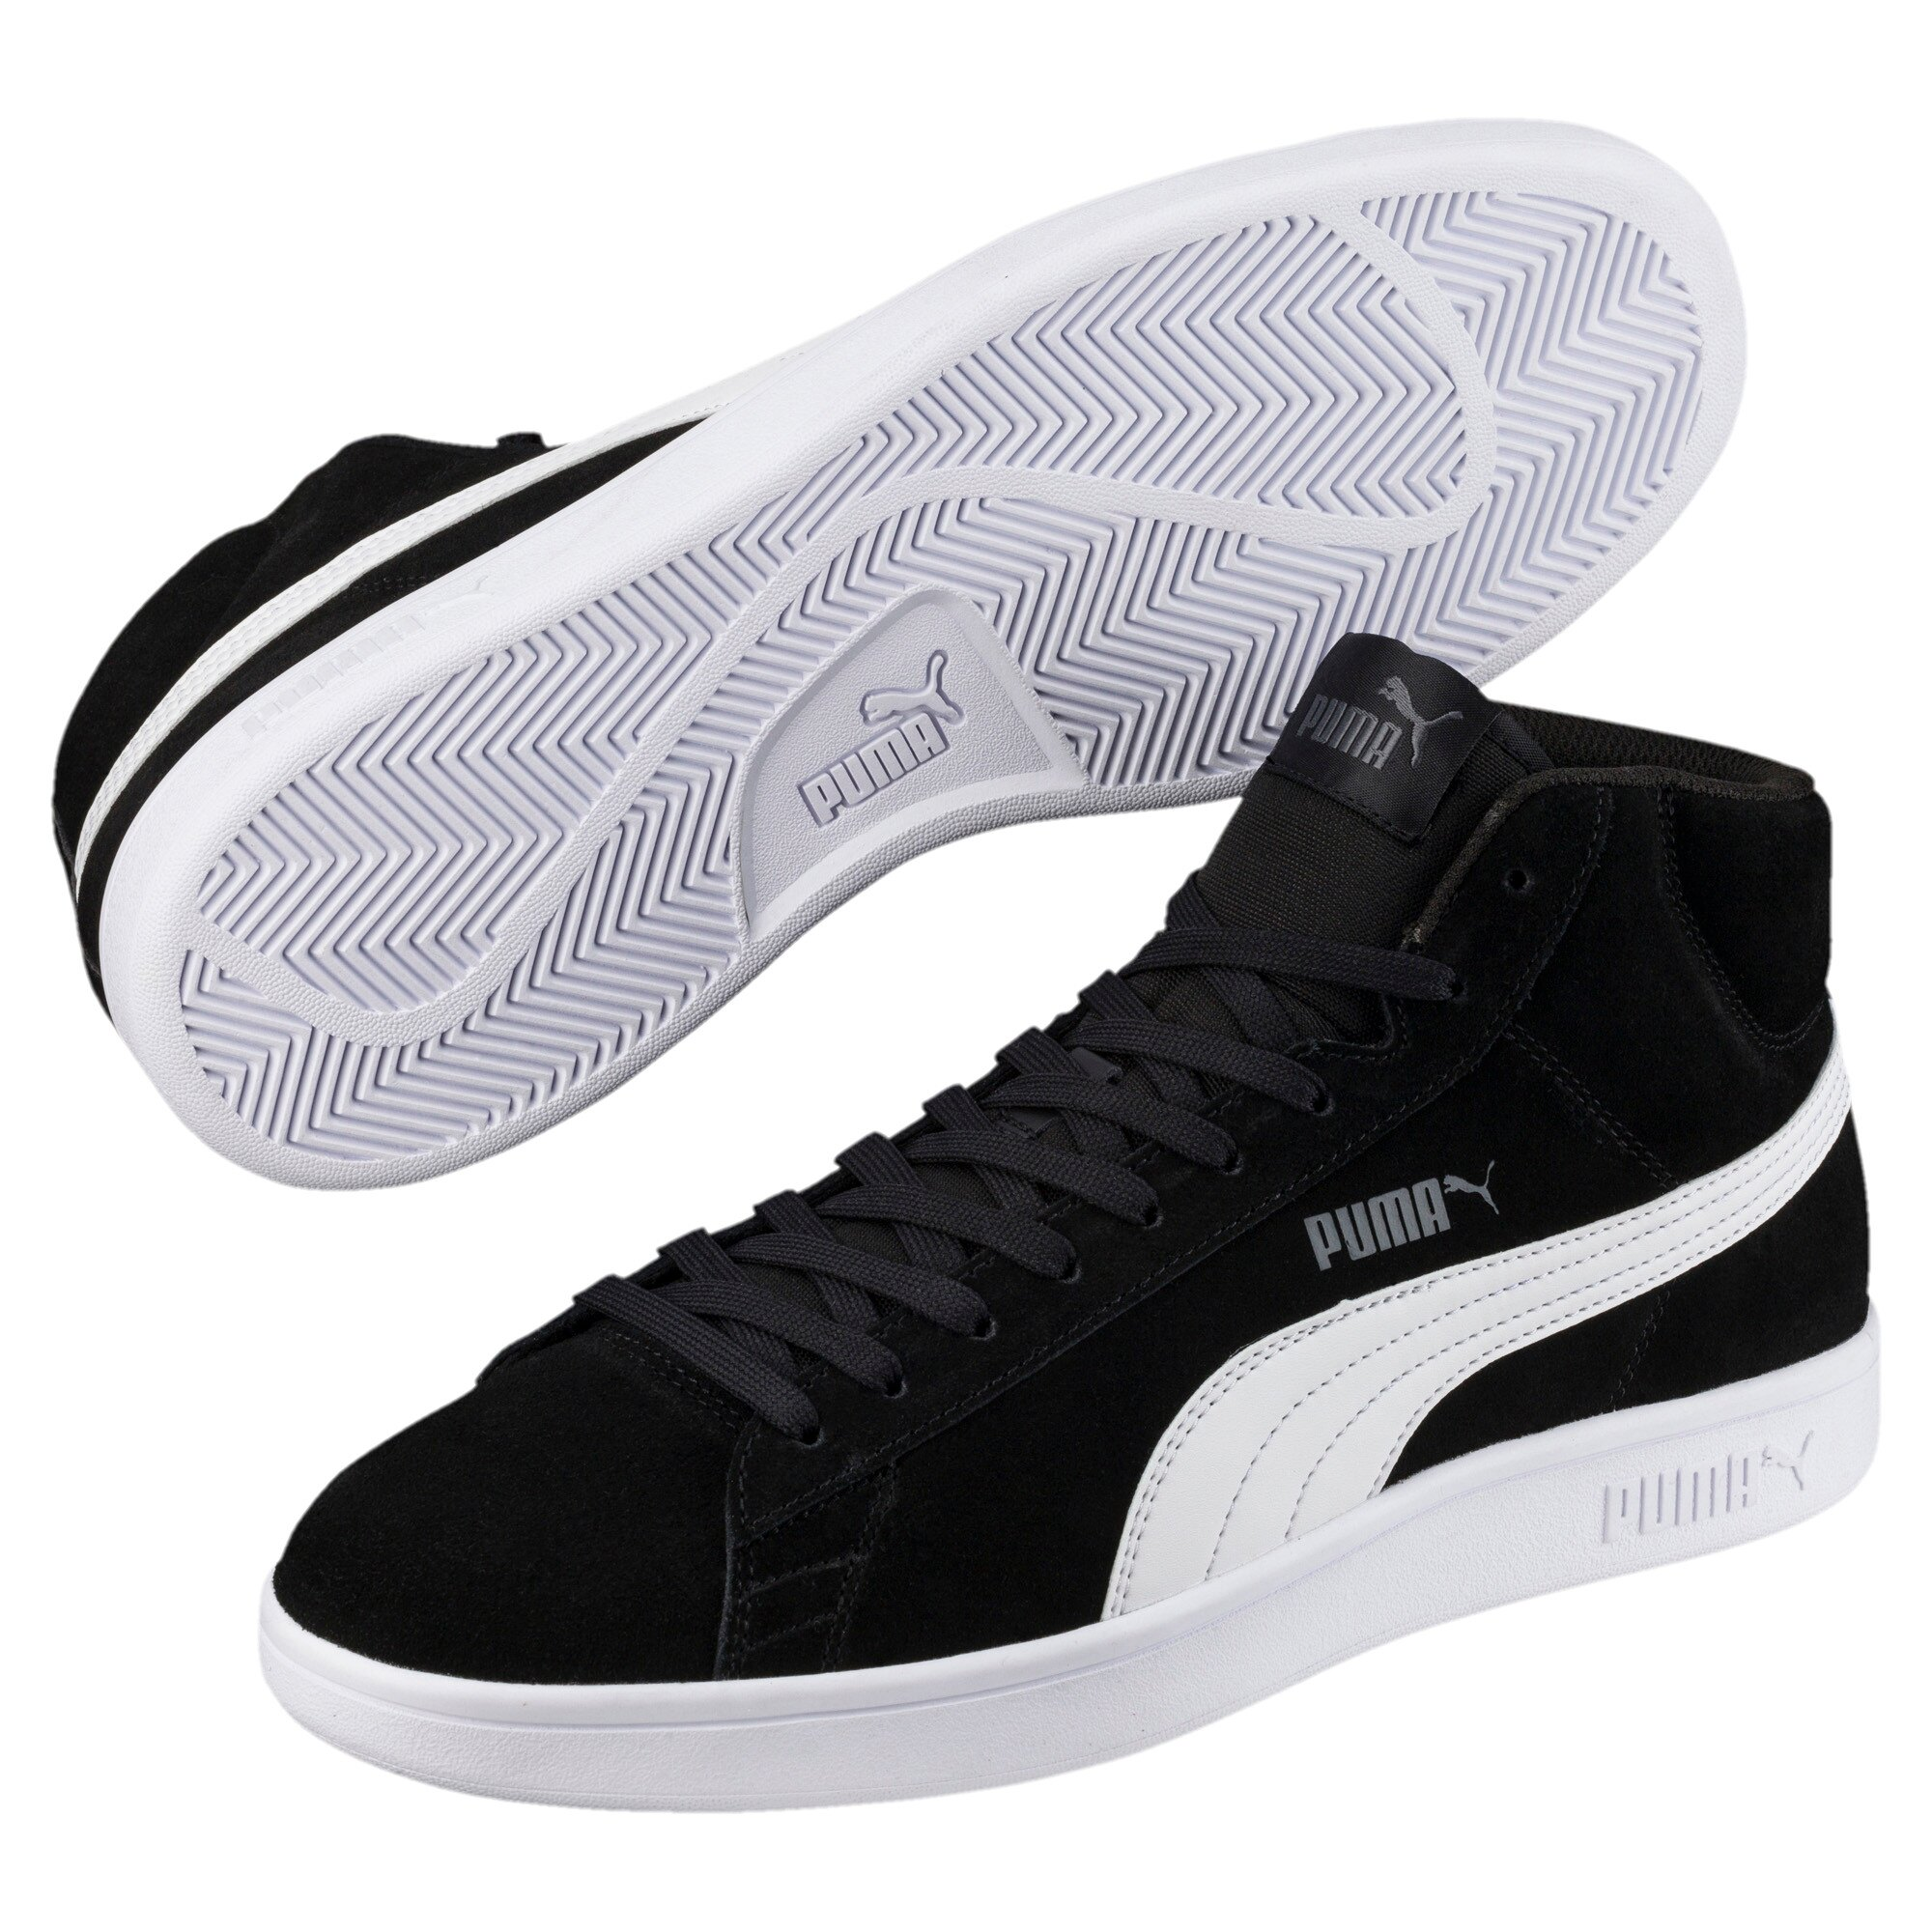 4105118cf2f Official Puma Store  PUMA Smash v2 Suede Mid Sneakers